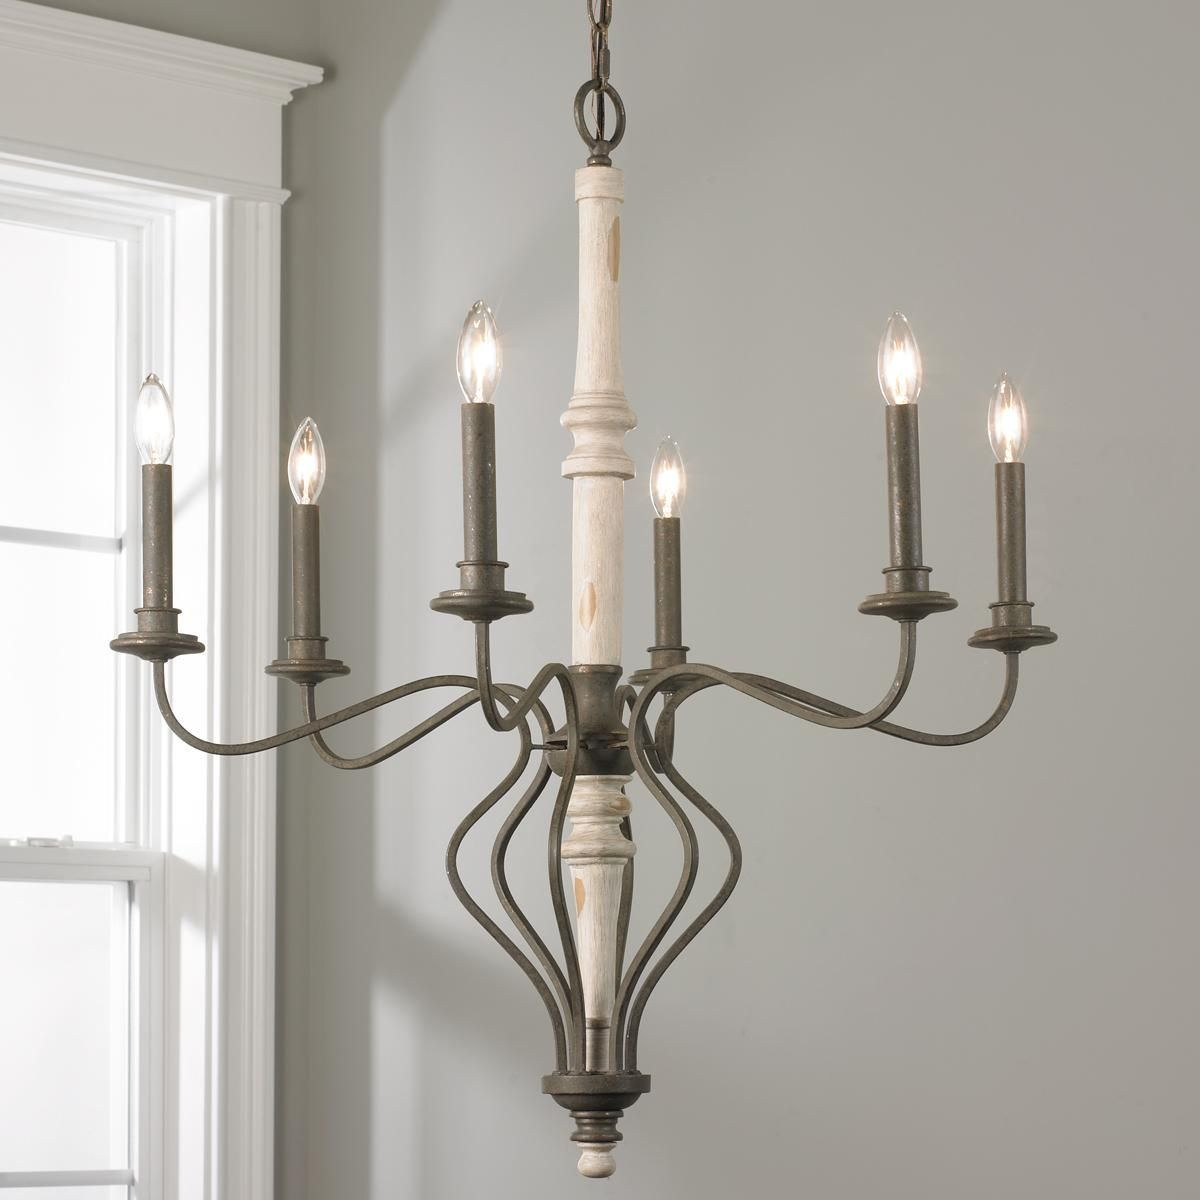 French country curve chandelier small french country French country chandelier